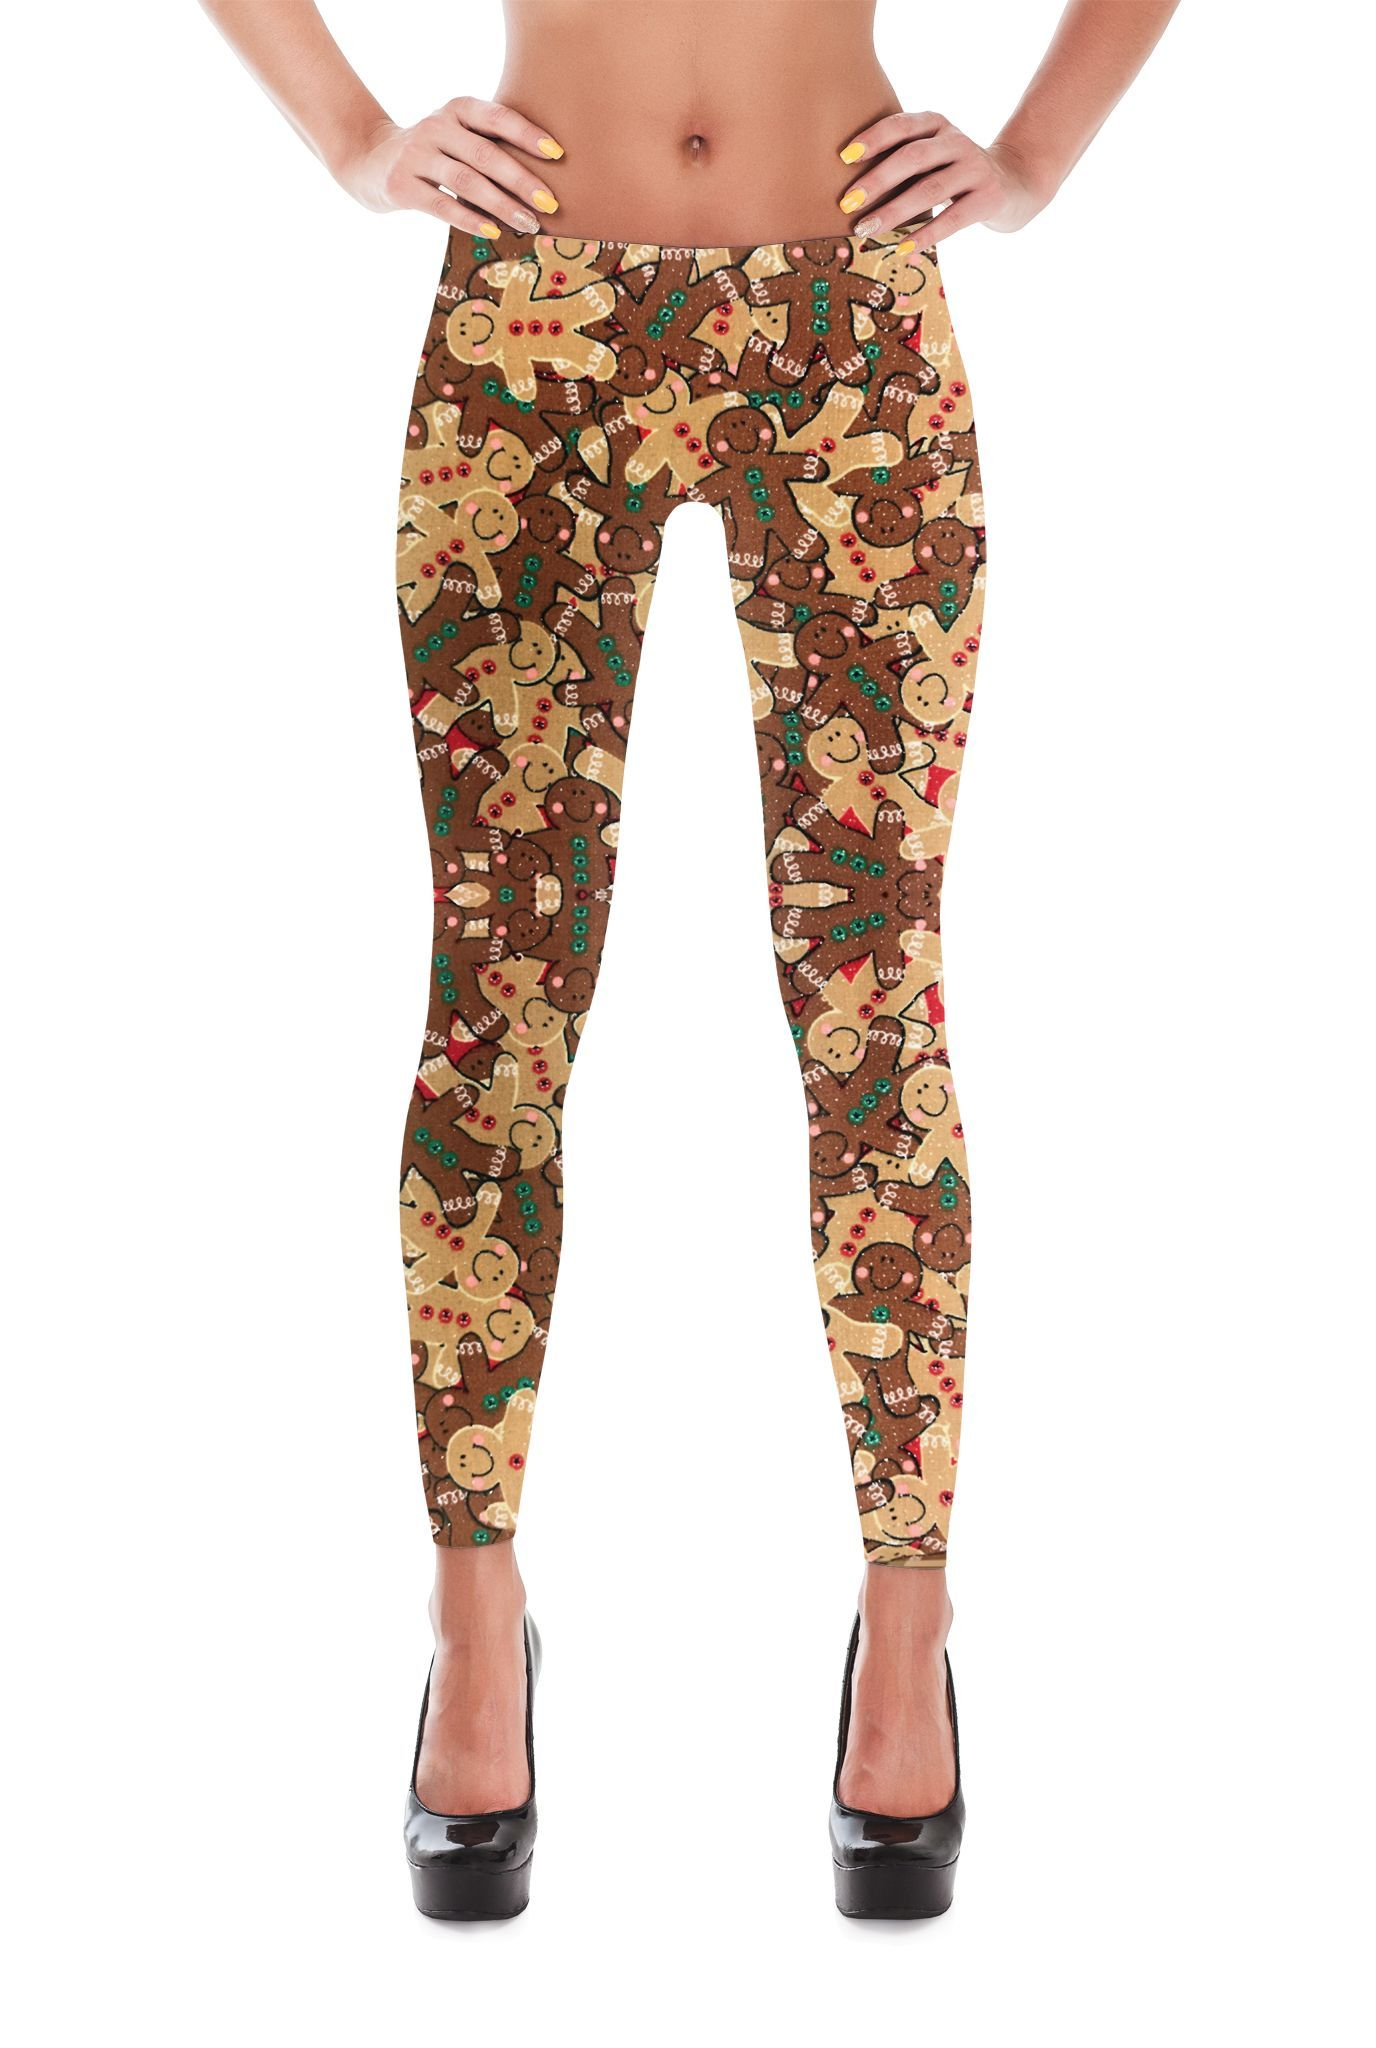 2874fcfca28f11 Gingerbread Man Leggings - Christmas Leggings - Womens Leggings - Yoga  Leggings - Winter Leggings - Christmas Gift - Gifts - Candy Canes